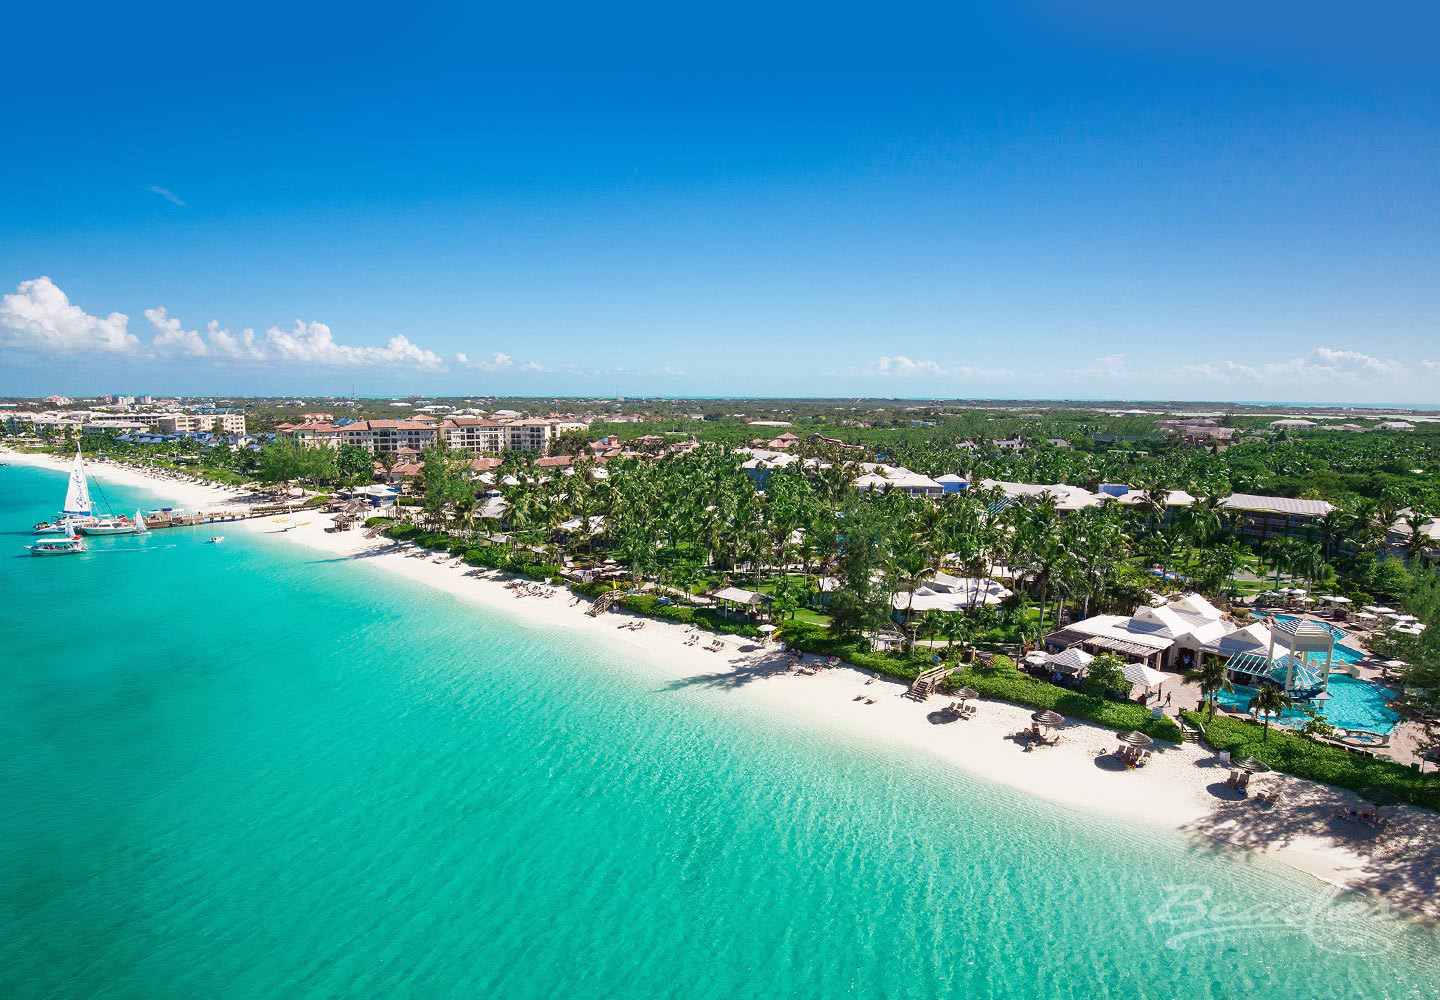 Travel Agency All-Inclusive Resort Beaches Turks and Caicos 149